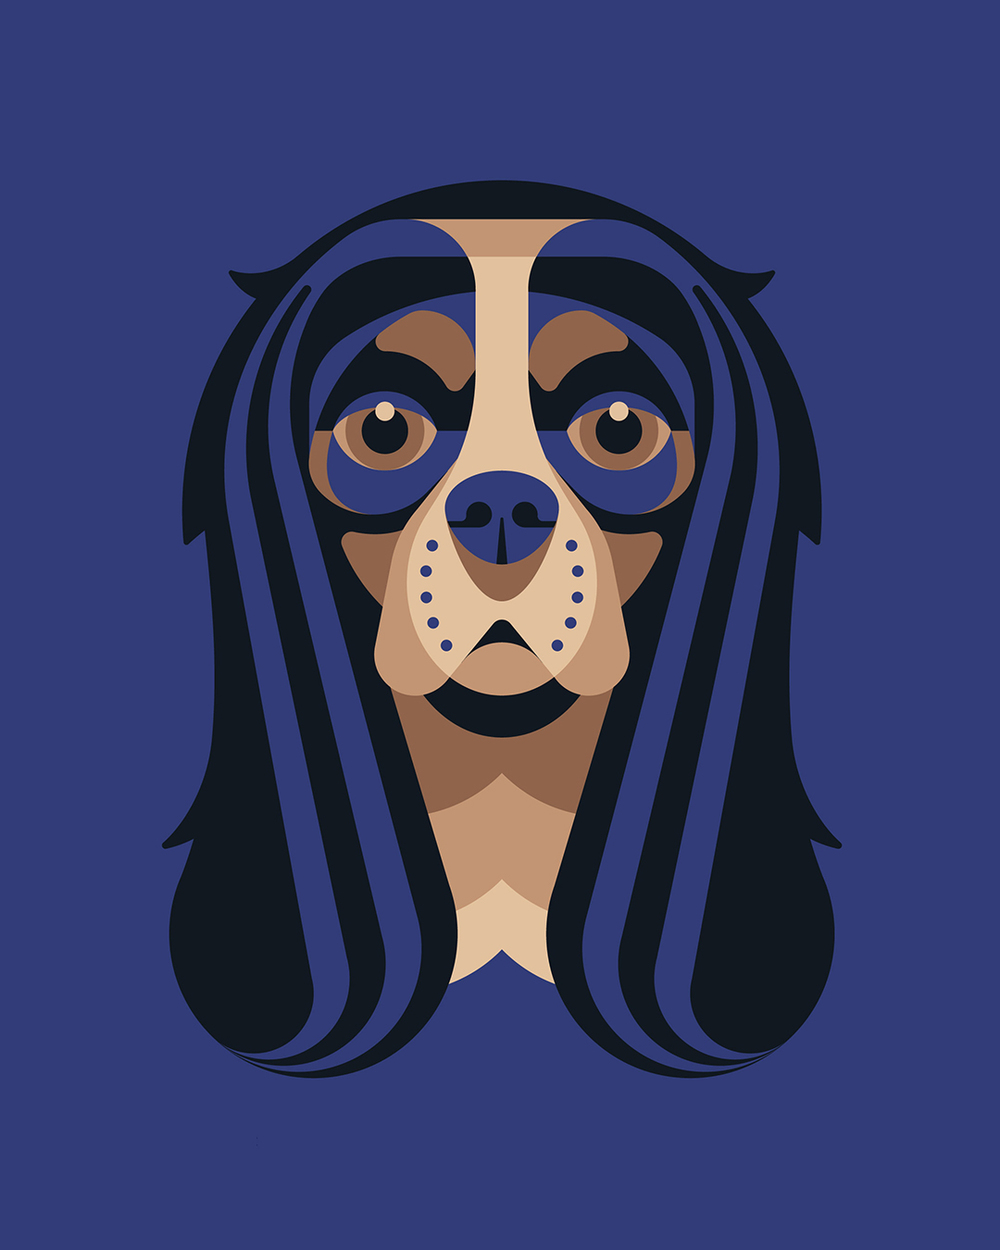 King Charles Cavalier Illustration by DKNG